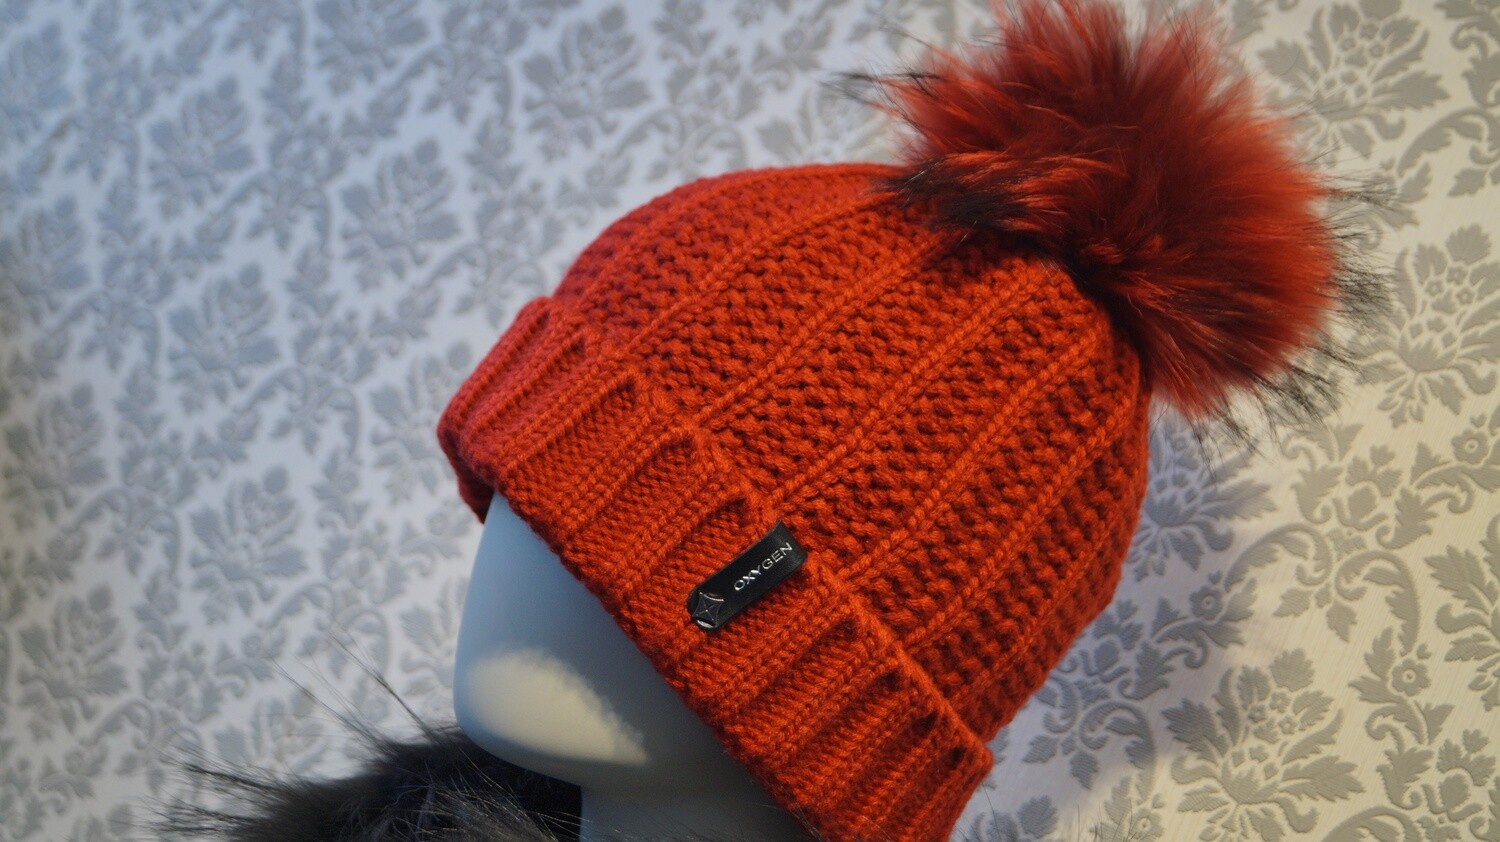 Oxygen Tuque Rouge--Oxygen Toque Red